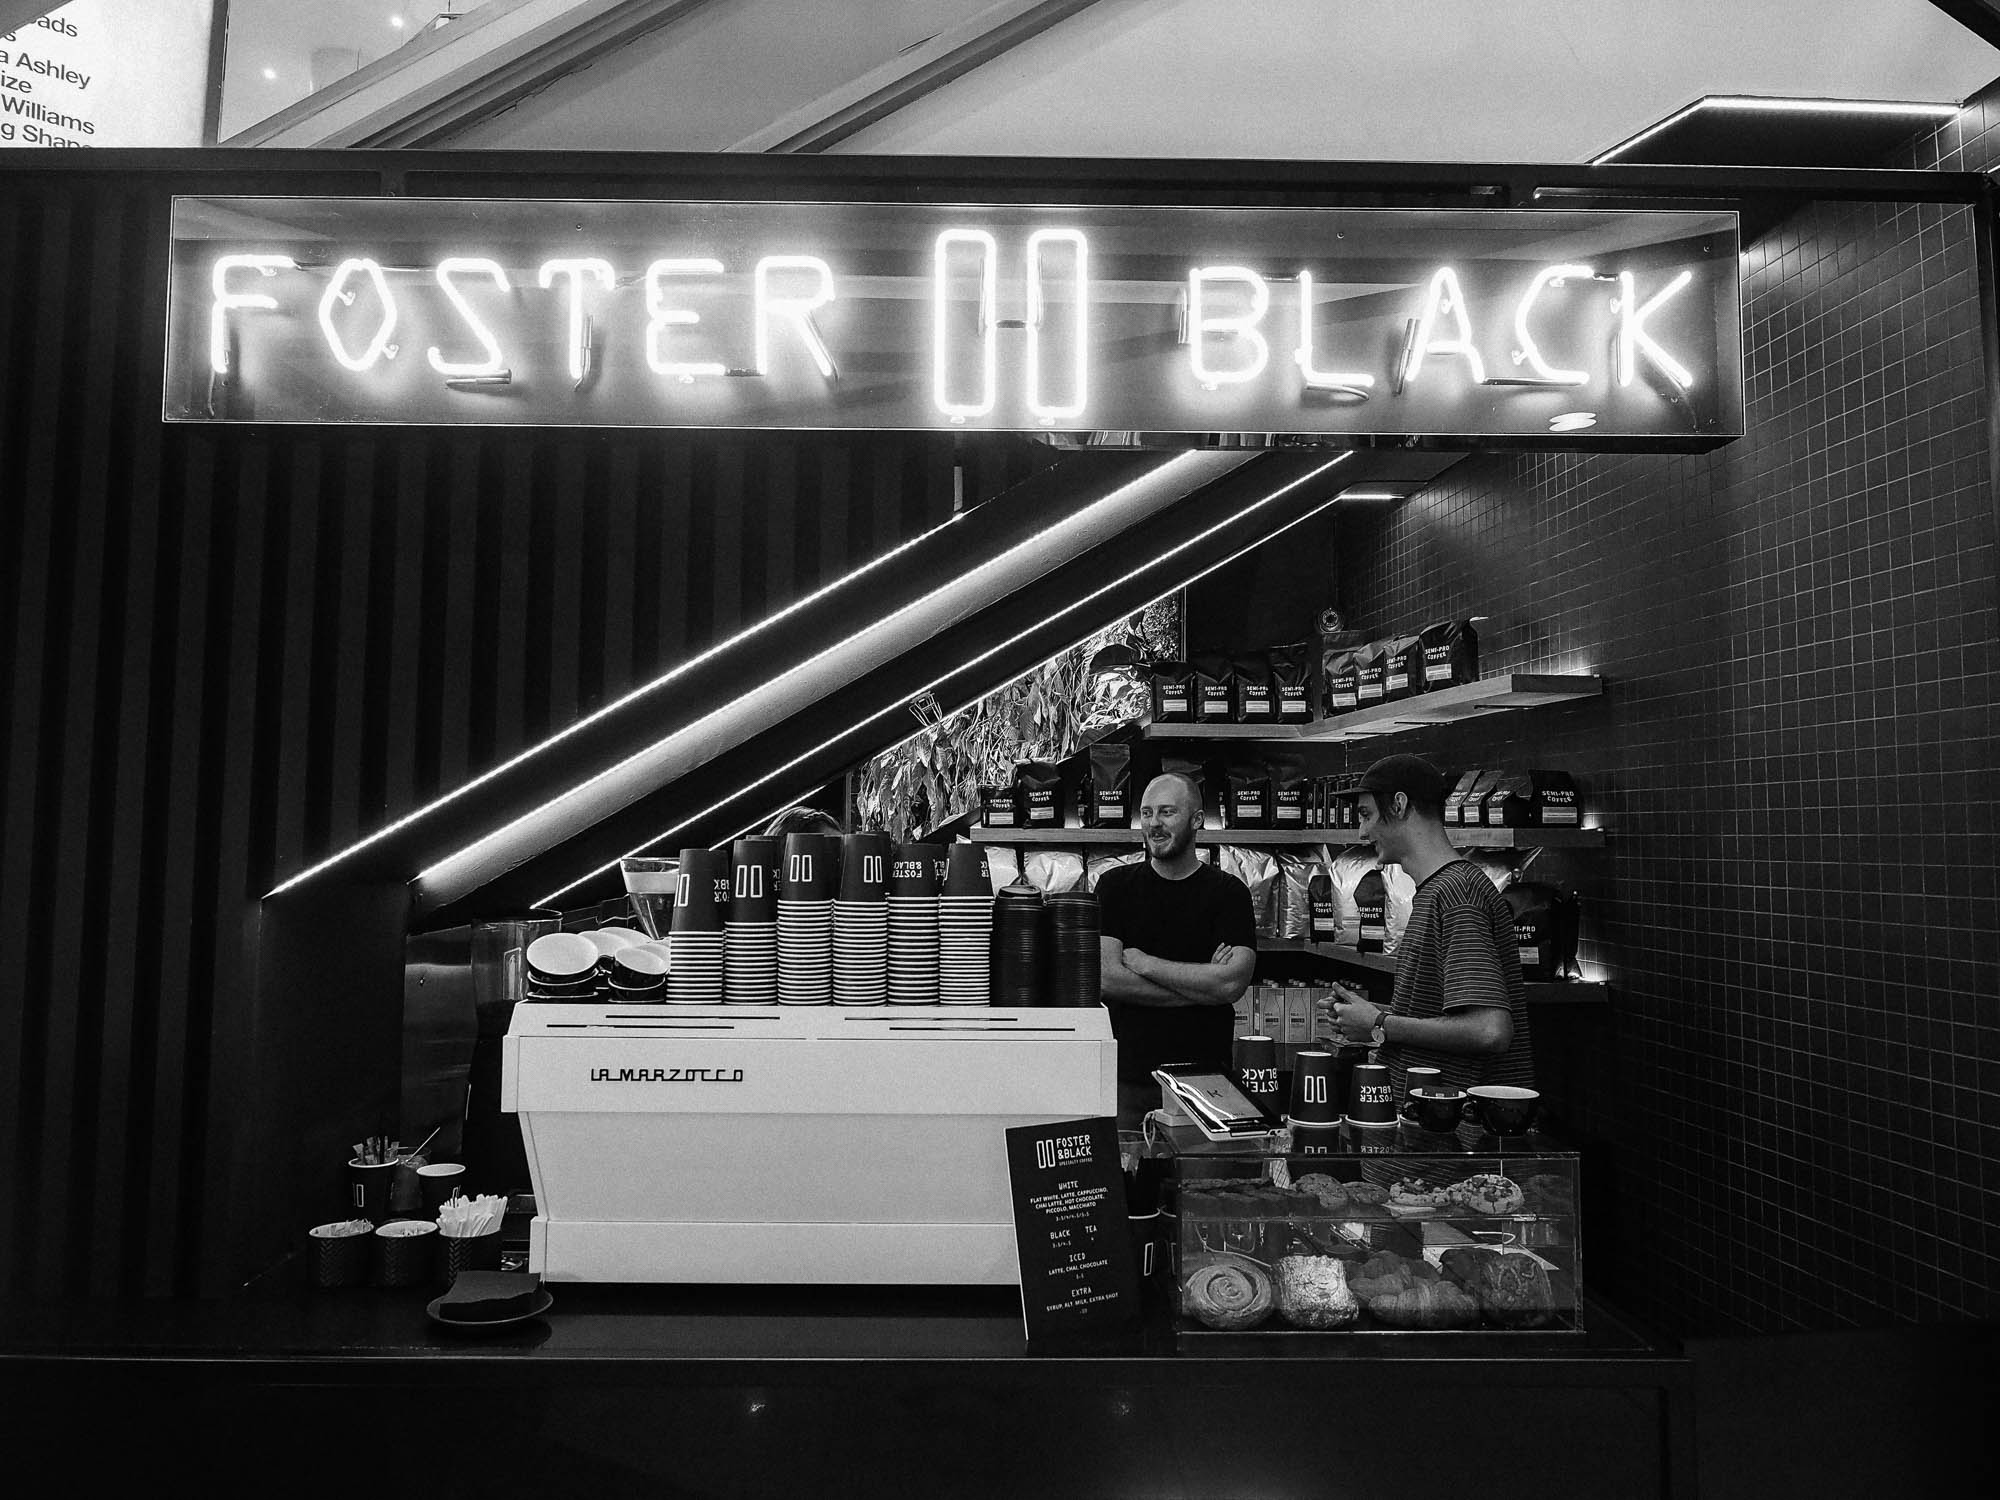 FOSTER AND BLACK-33